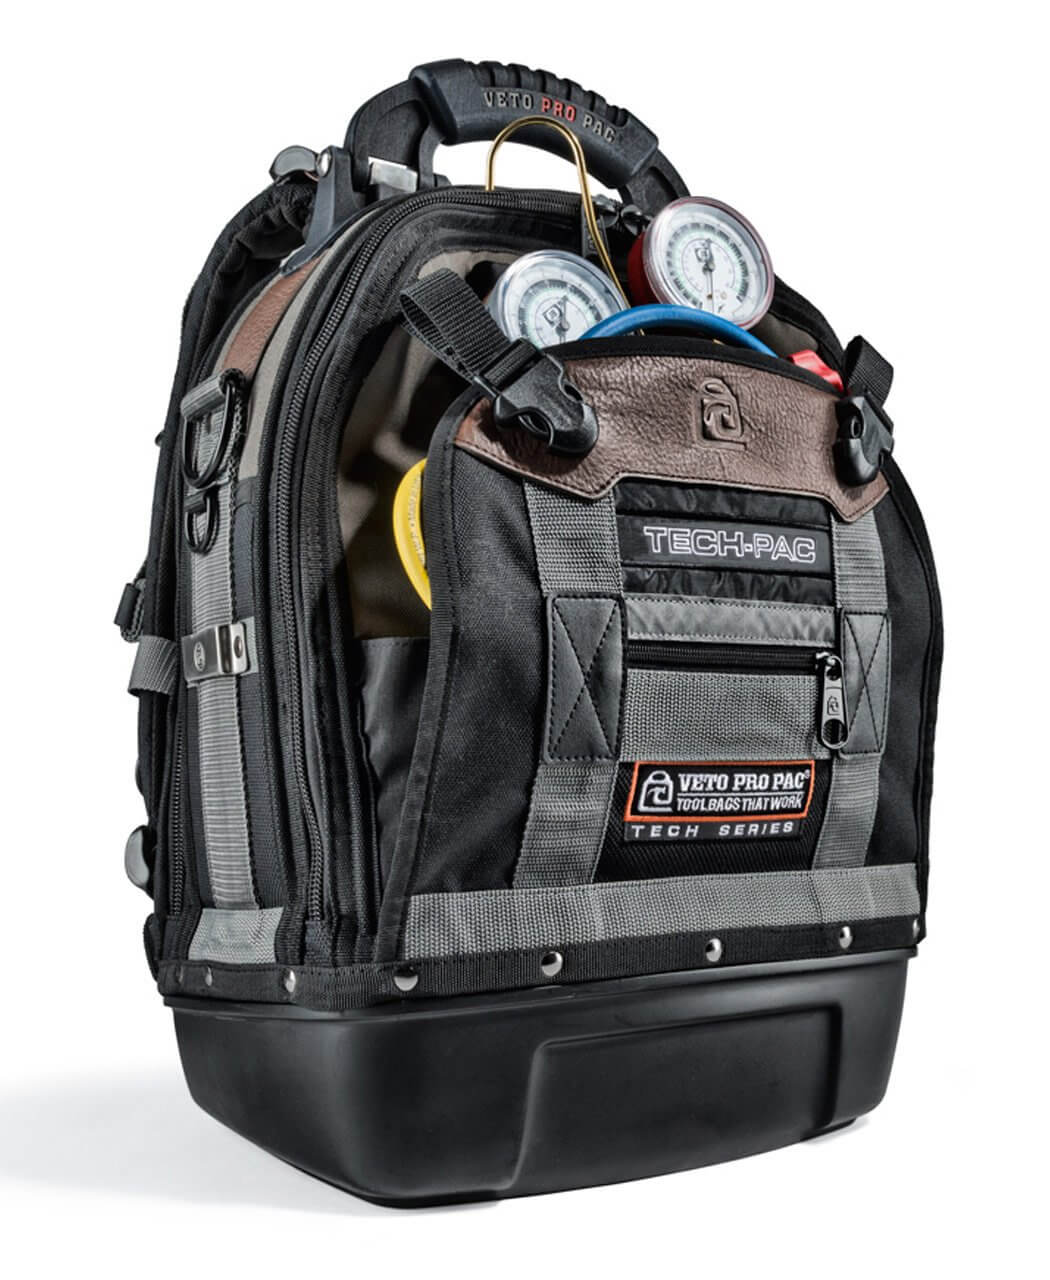 Veto Pro Pac Tech Pac Tool Backpack for Tools and Meters